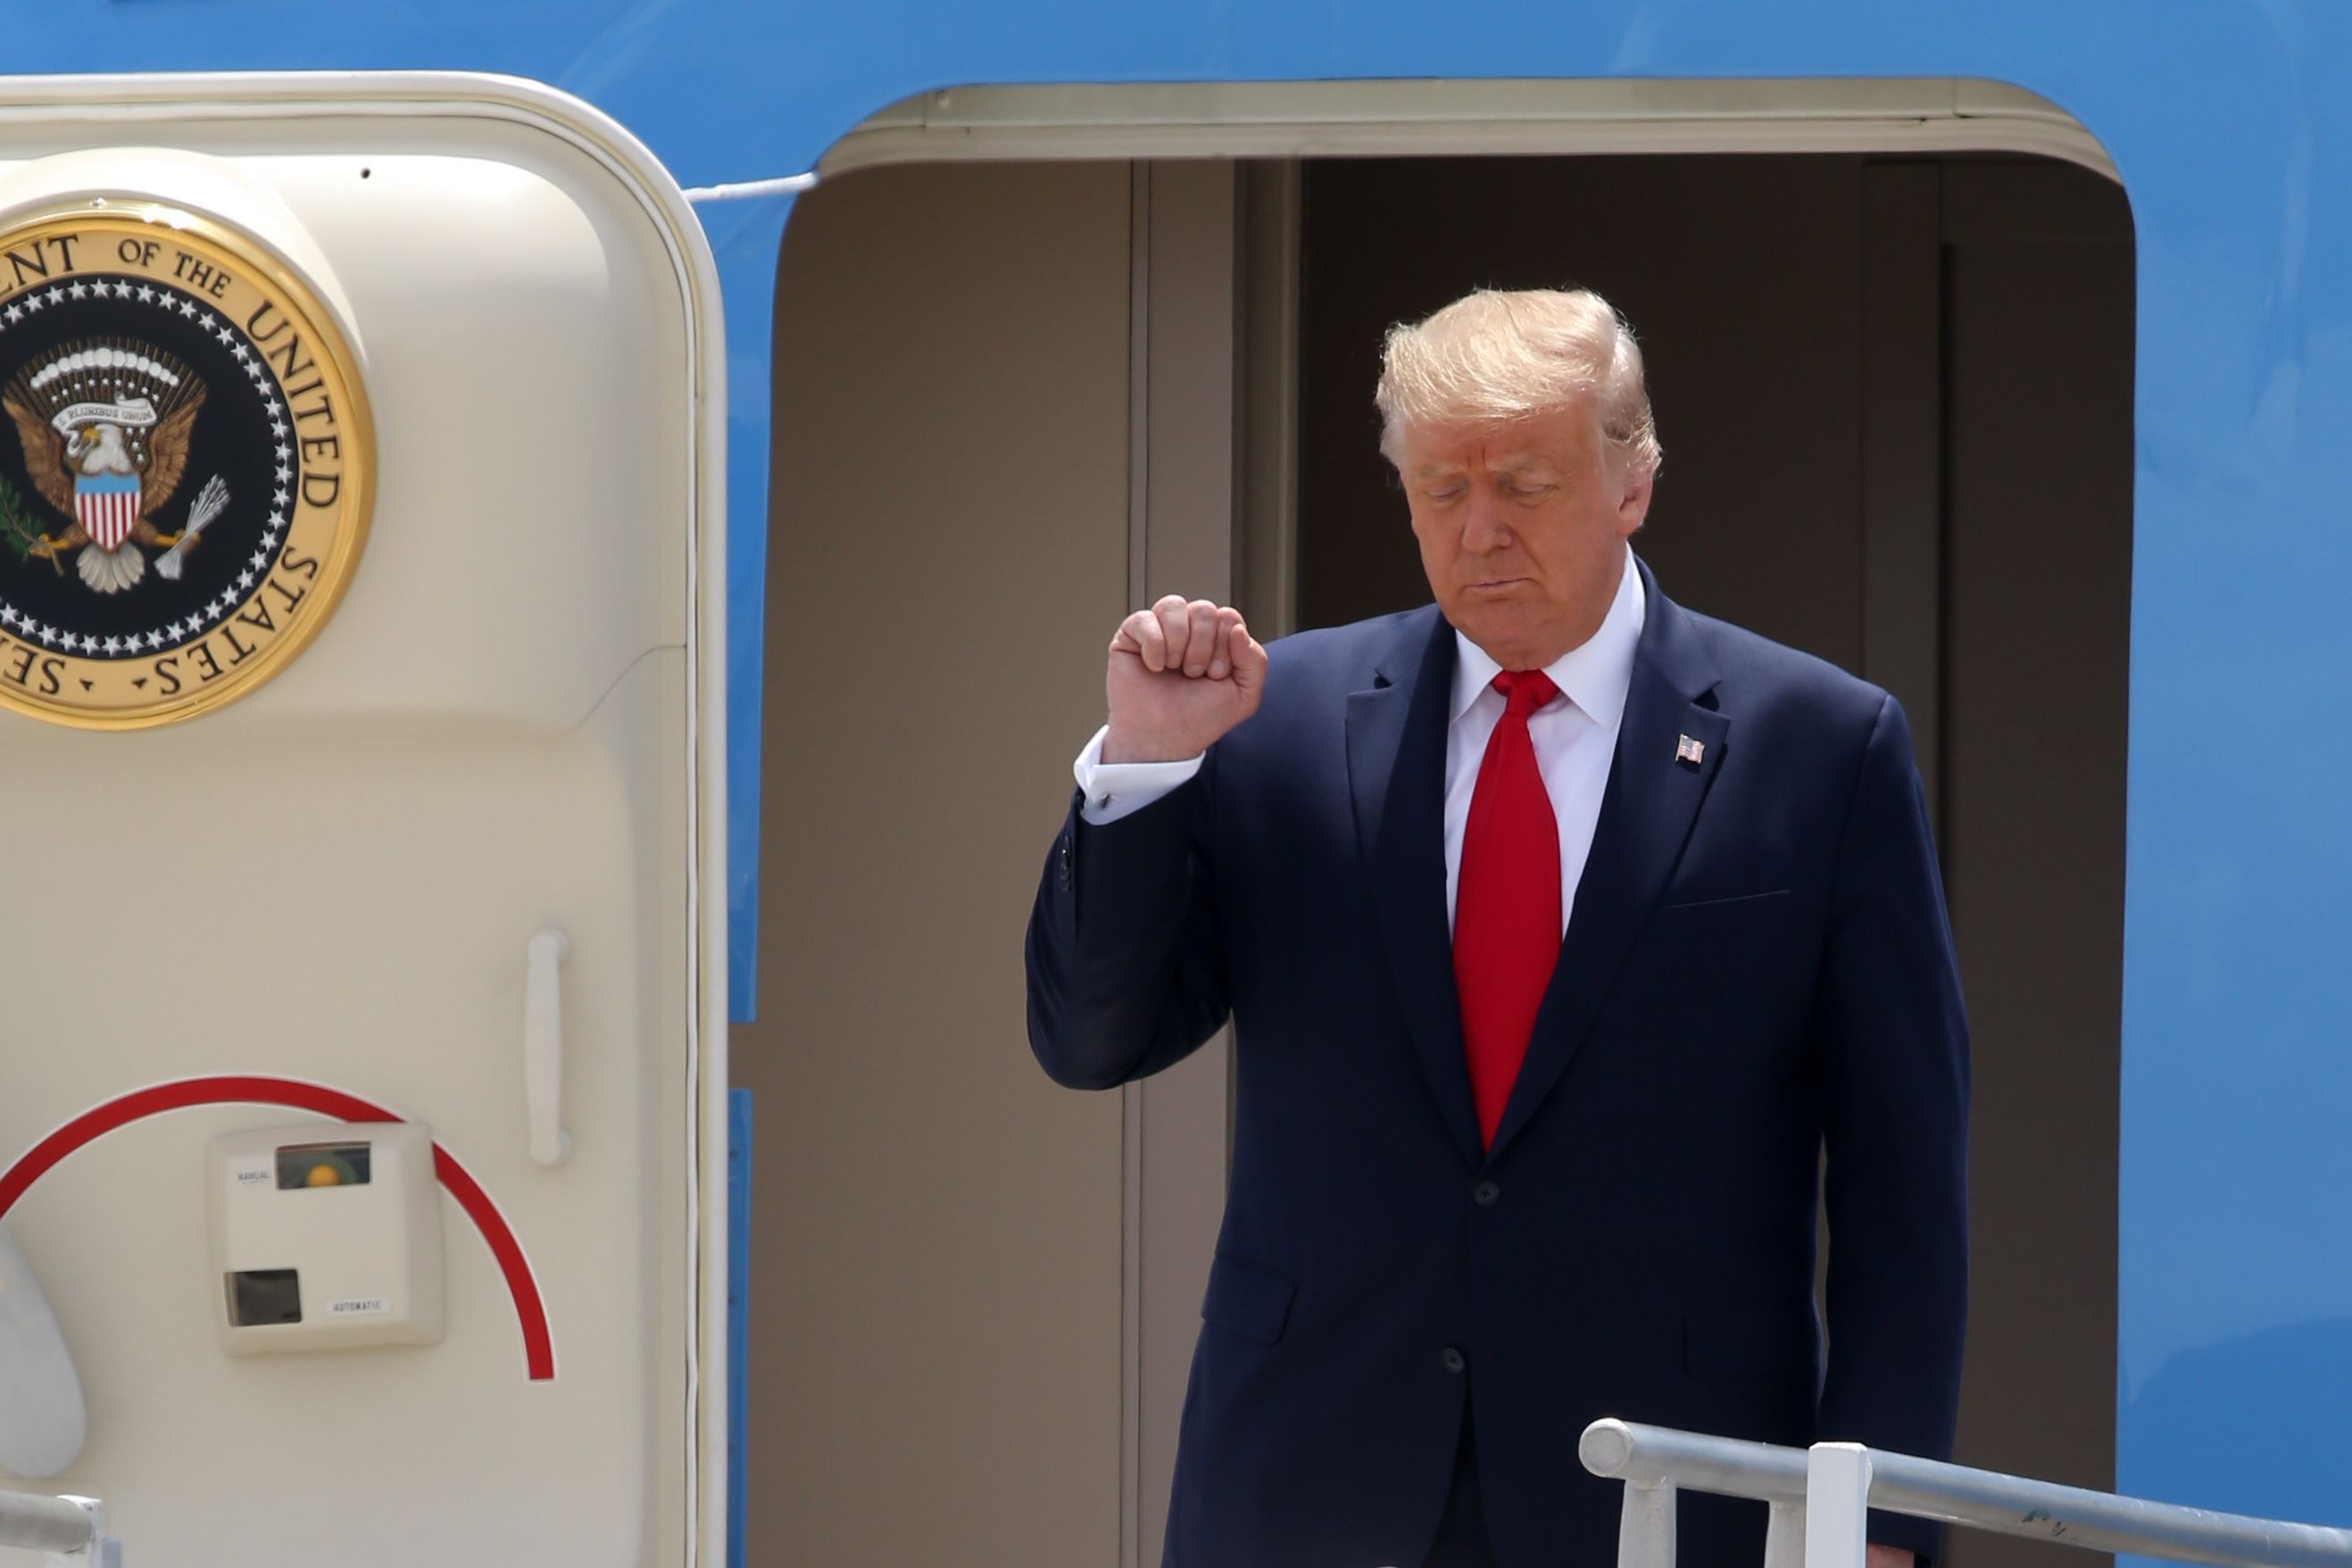 10/07/2020 10 July 2020, US, Miami: US President Donald Trump clinches his fist as he disembarks Air Force One at Miami International Airport. Photo: -/SMG via ZUMA Wire/dpa POLITICA INTERNACIONAL -/SMG via ZUMA Wire/dpa